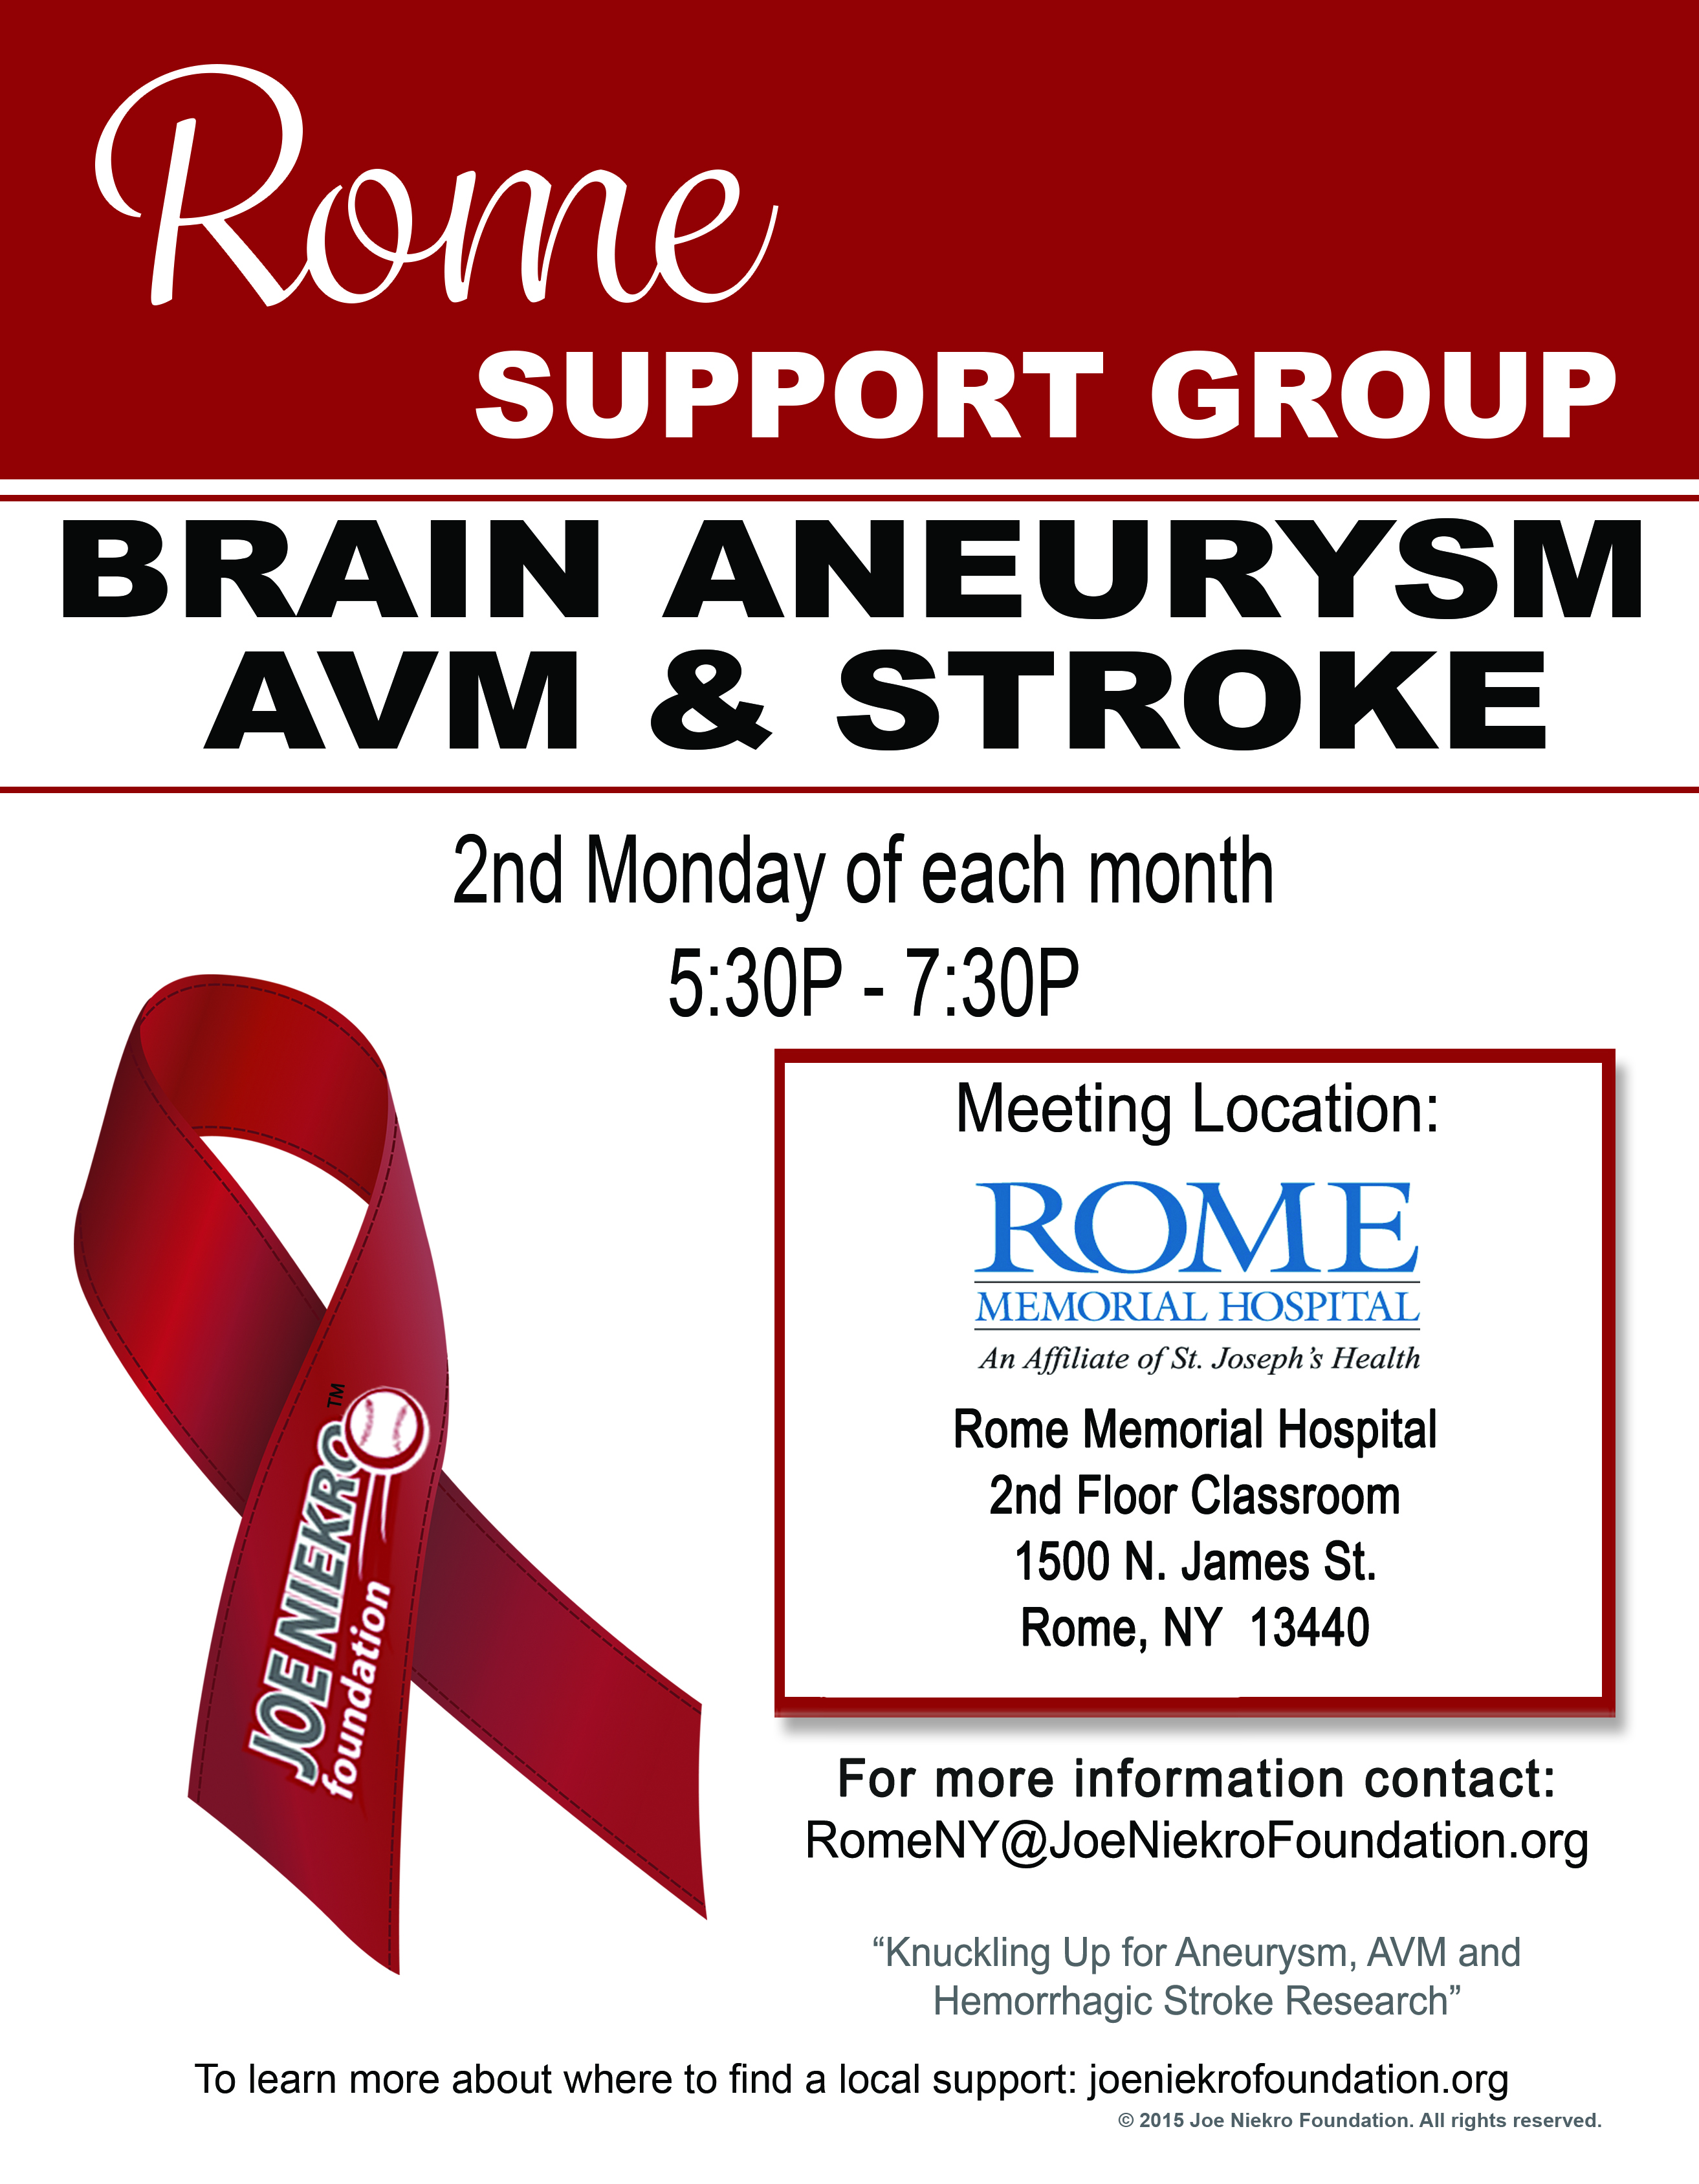 http://www.joeniekrofoundation.com/patient-caregiver-support/support-groups/locations/attachment/rome-poster/